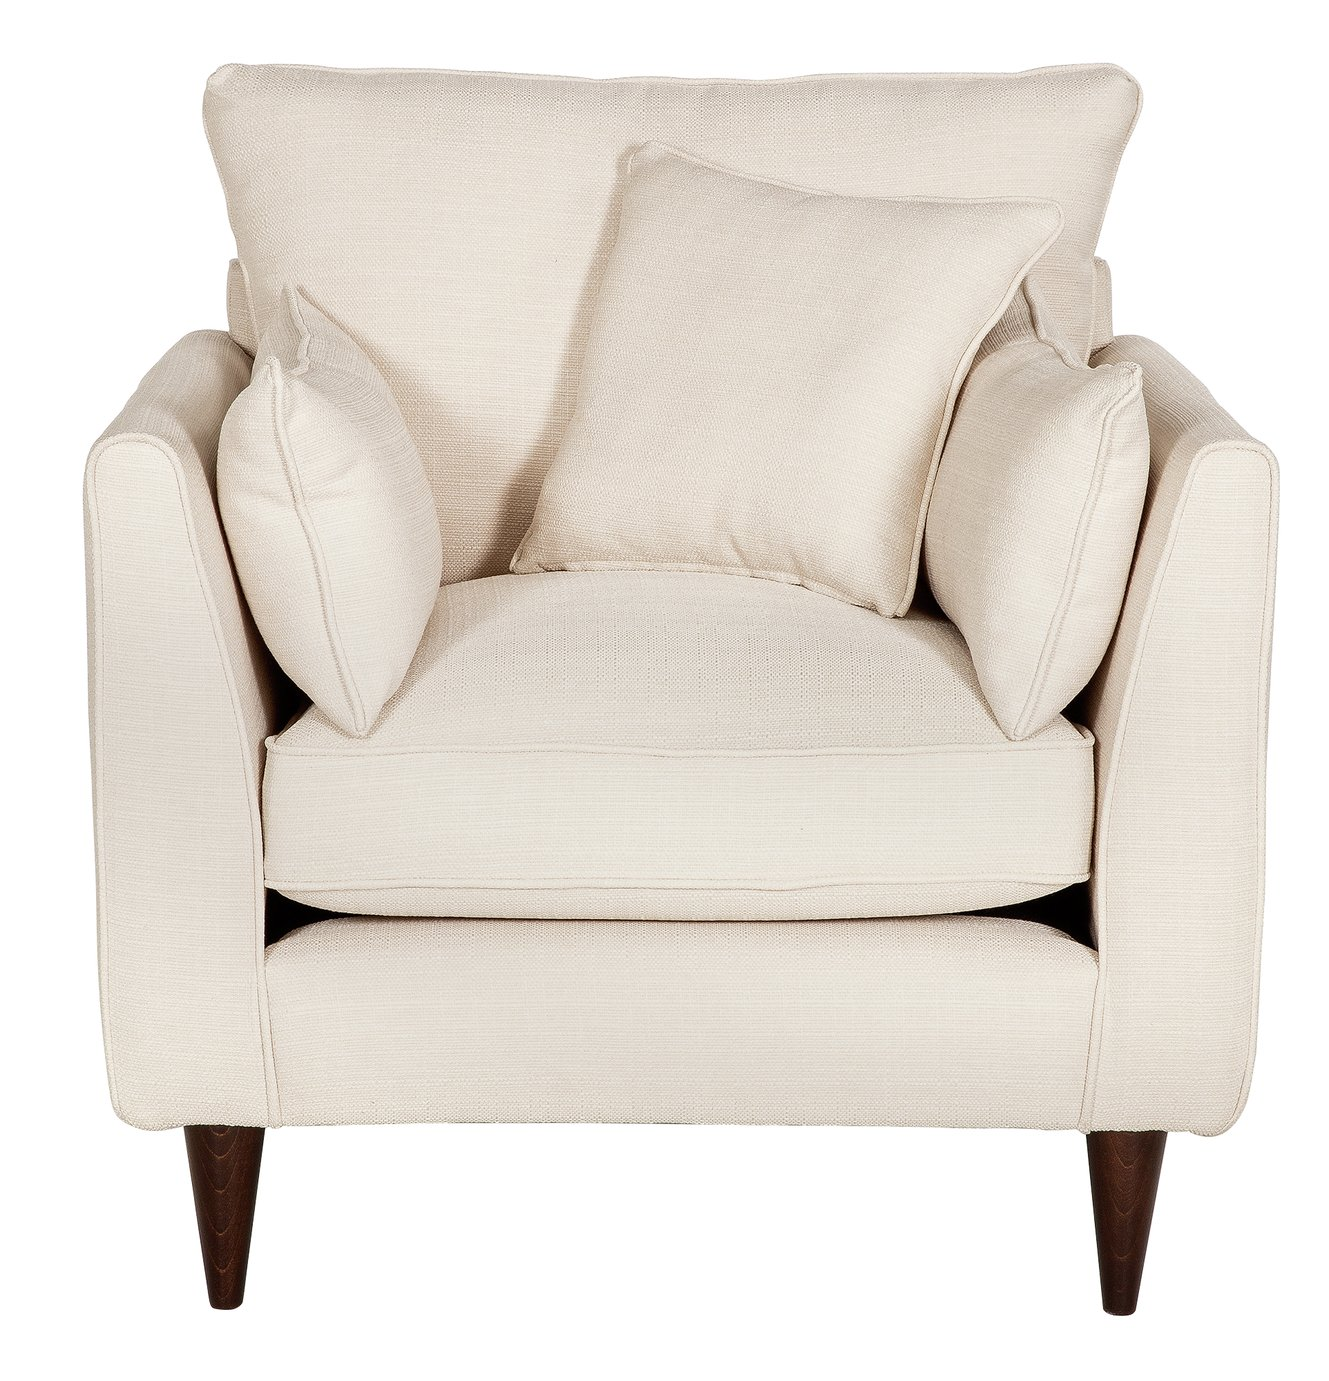 Argos Home Hector Fabric Armchair - Natural Linen